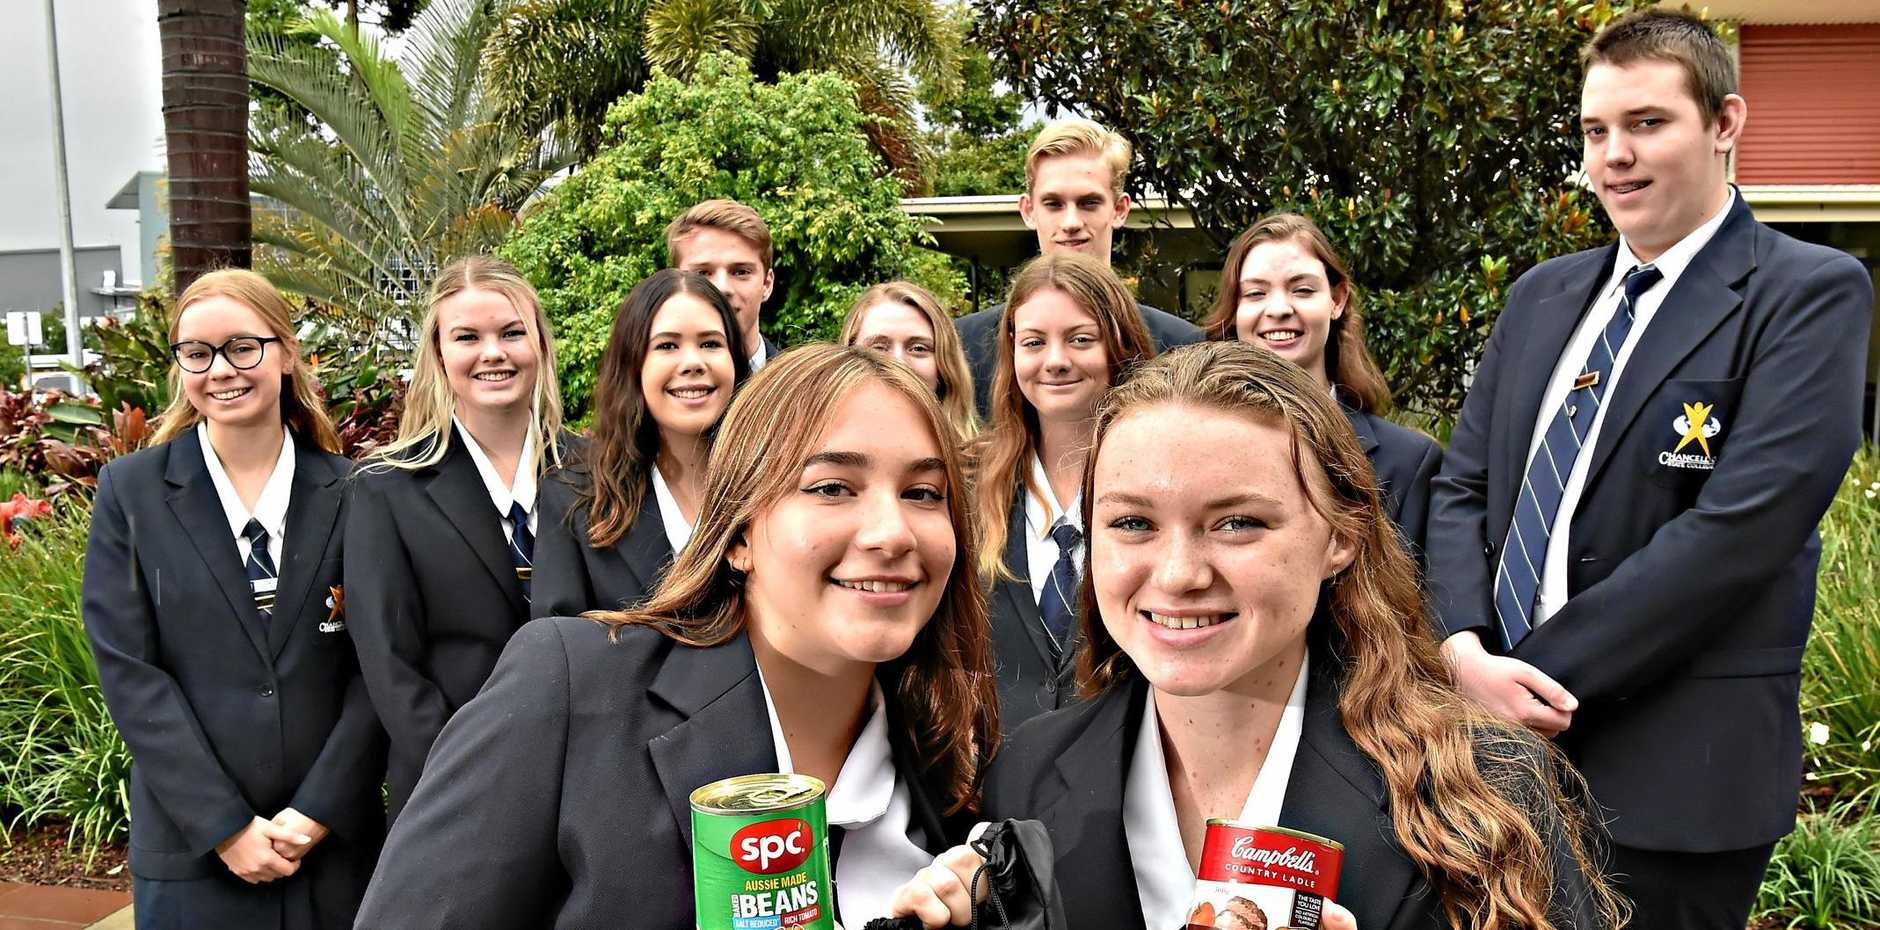 Year 12 Chancellor State College collecting cans of food for homeless people. Kenya Nebauer and Aviendah Dwyer-Flynn (front) with cans of food.